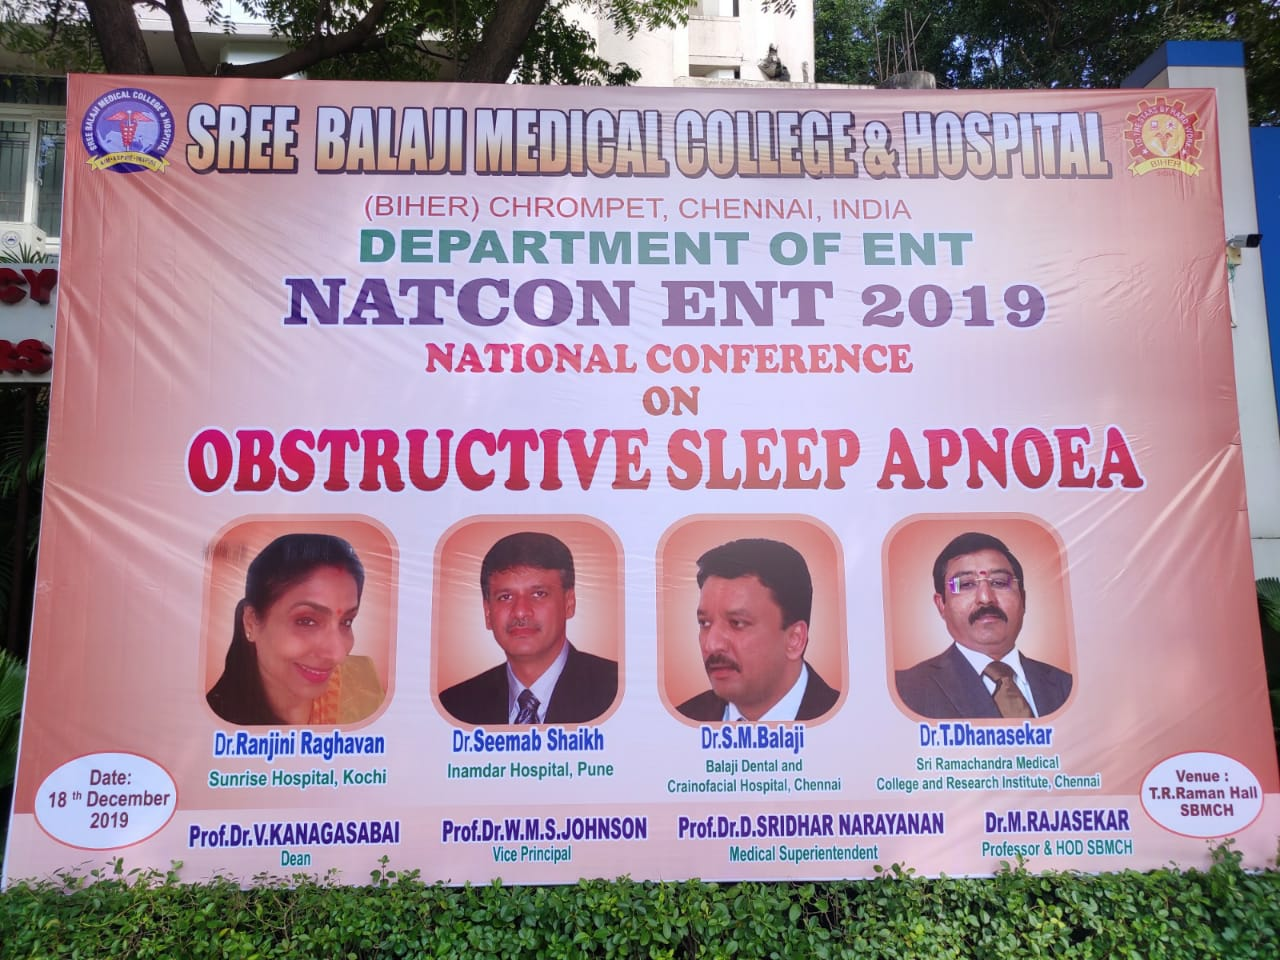 National Conference on Sleep Apnea NATCON ENT 2019 organized by Department of ENT Surgery, Sree Balaji Medical College and Hospital